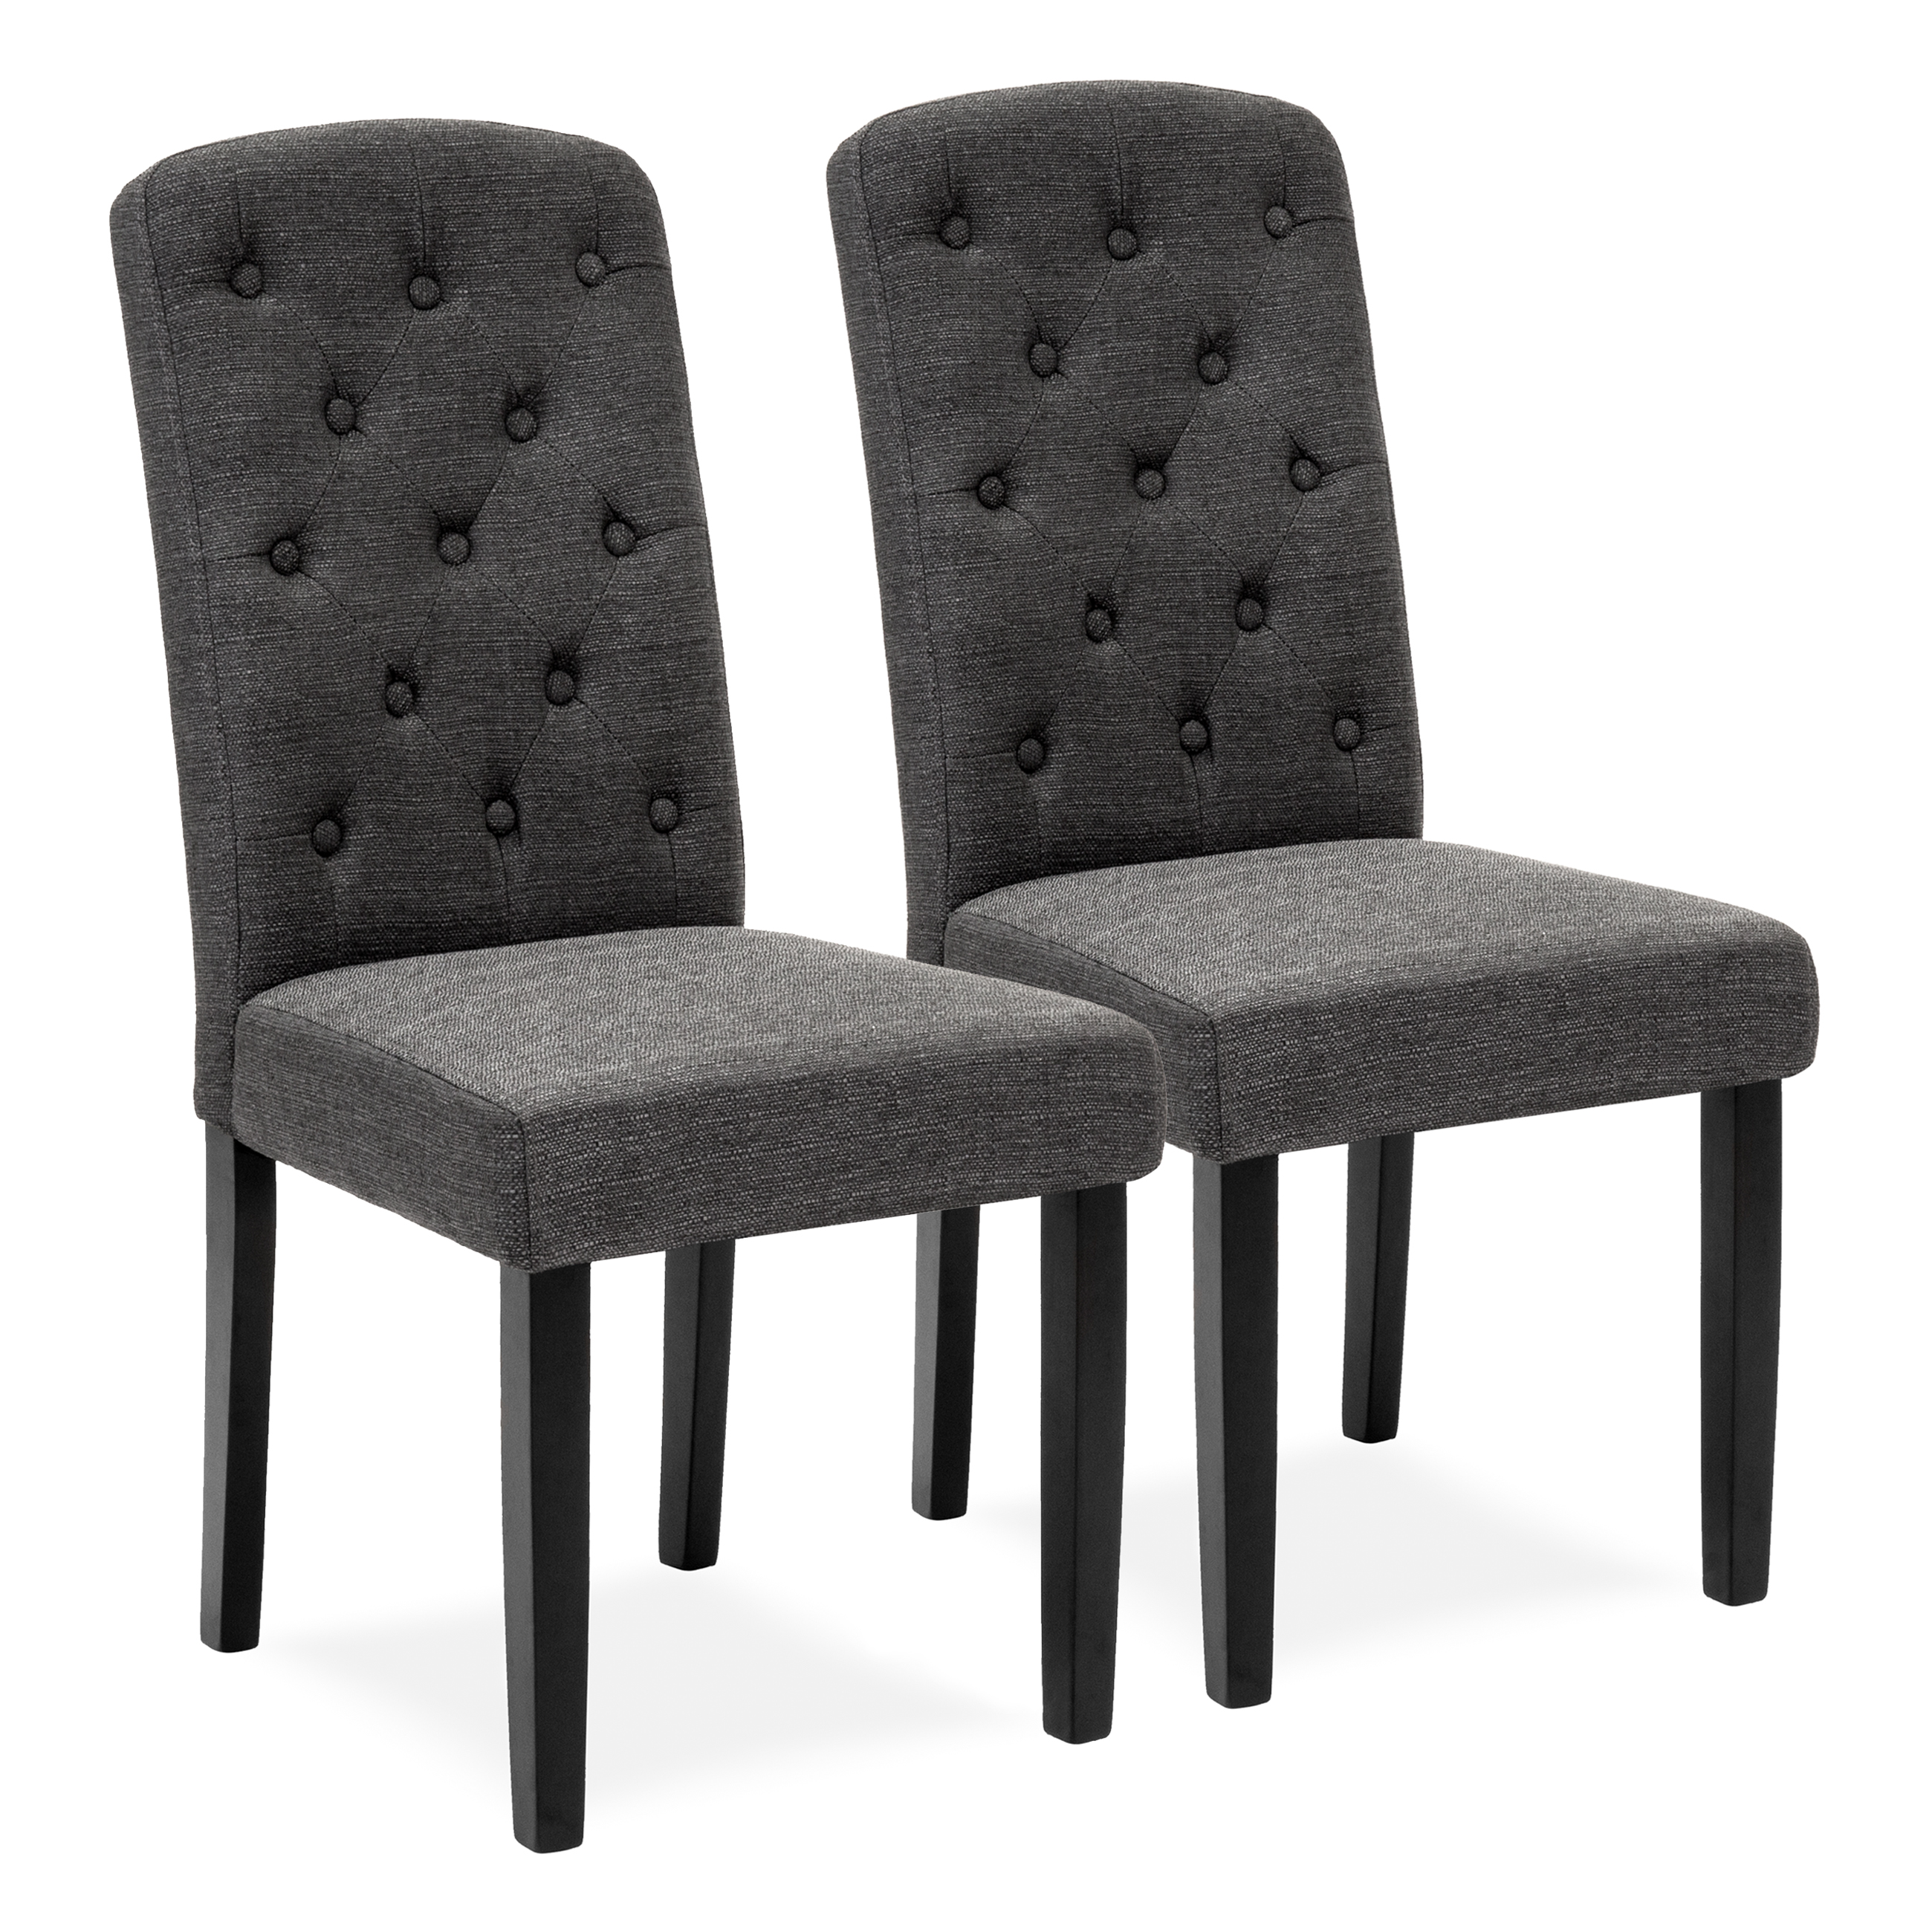 parsons chairs pride parts best choice products set of 2 tufted fabric dining home furniture for and